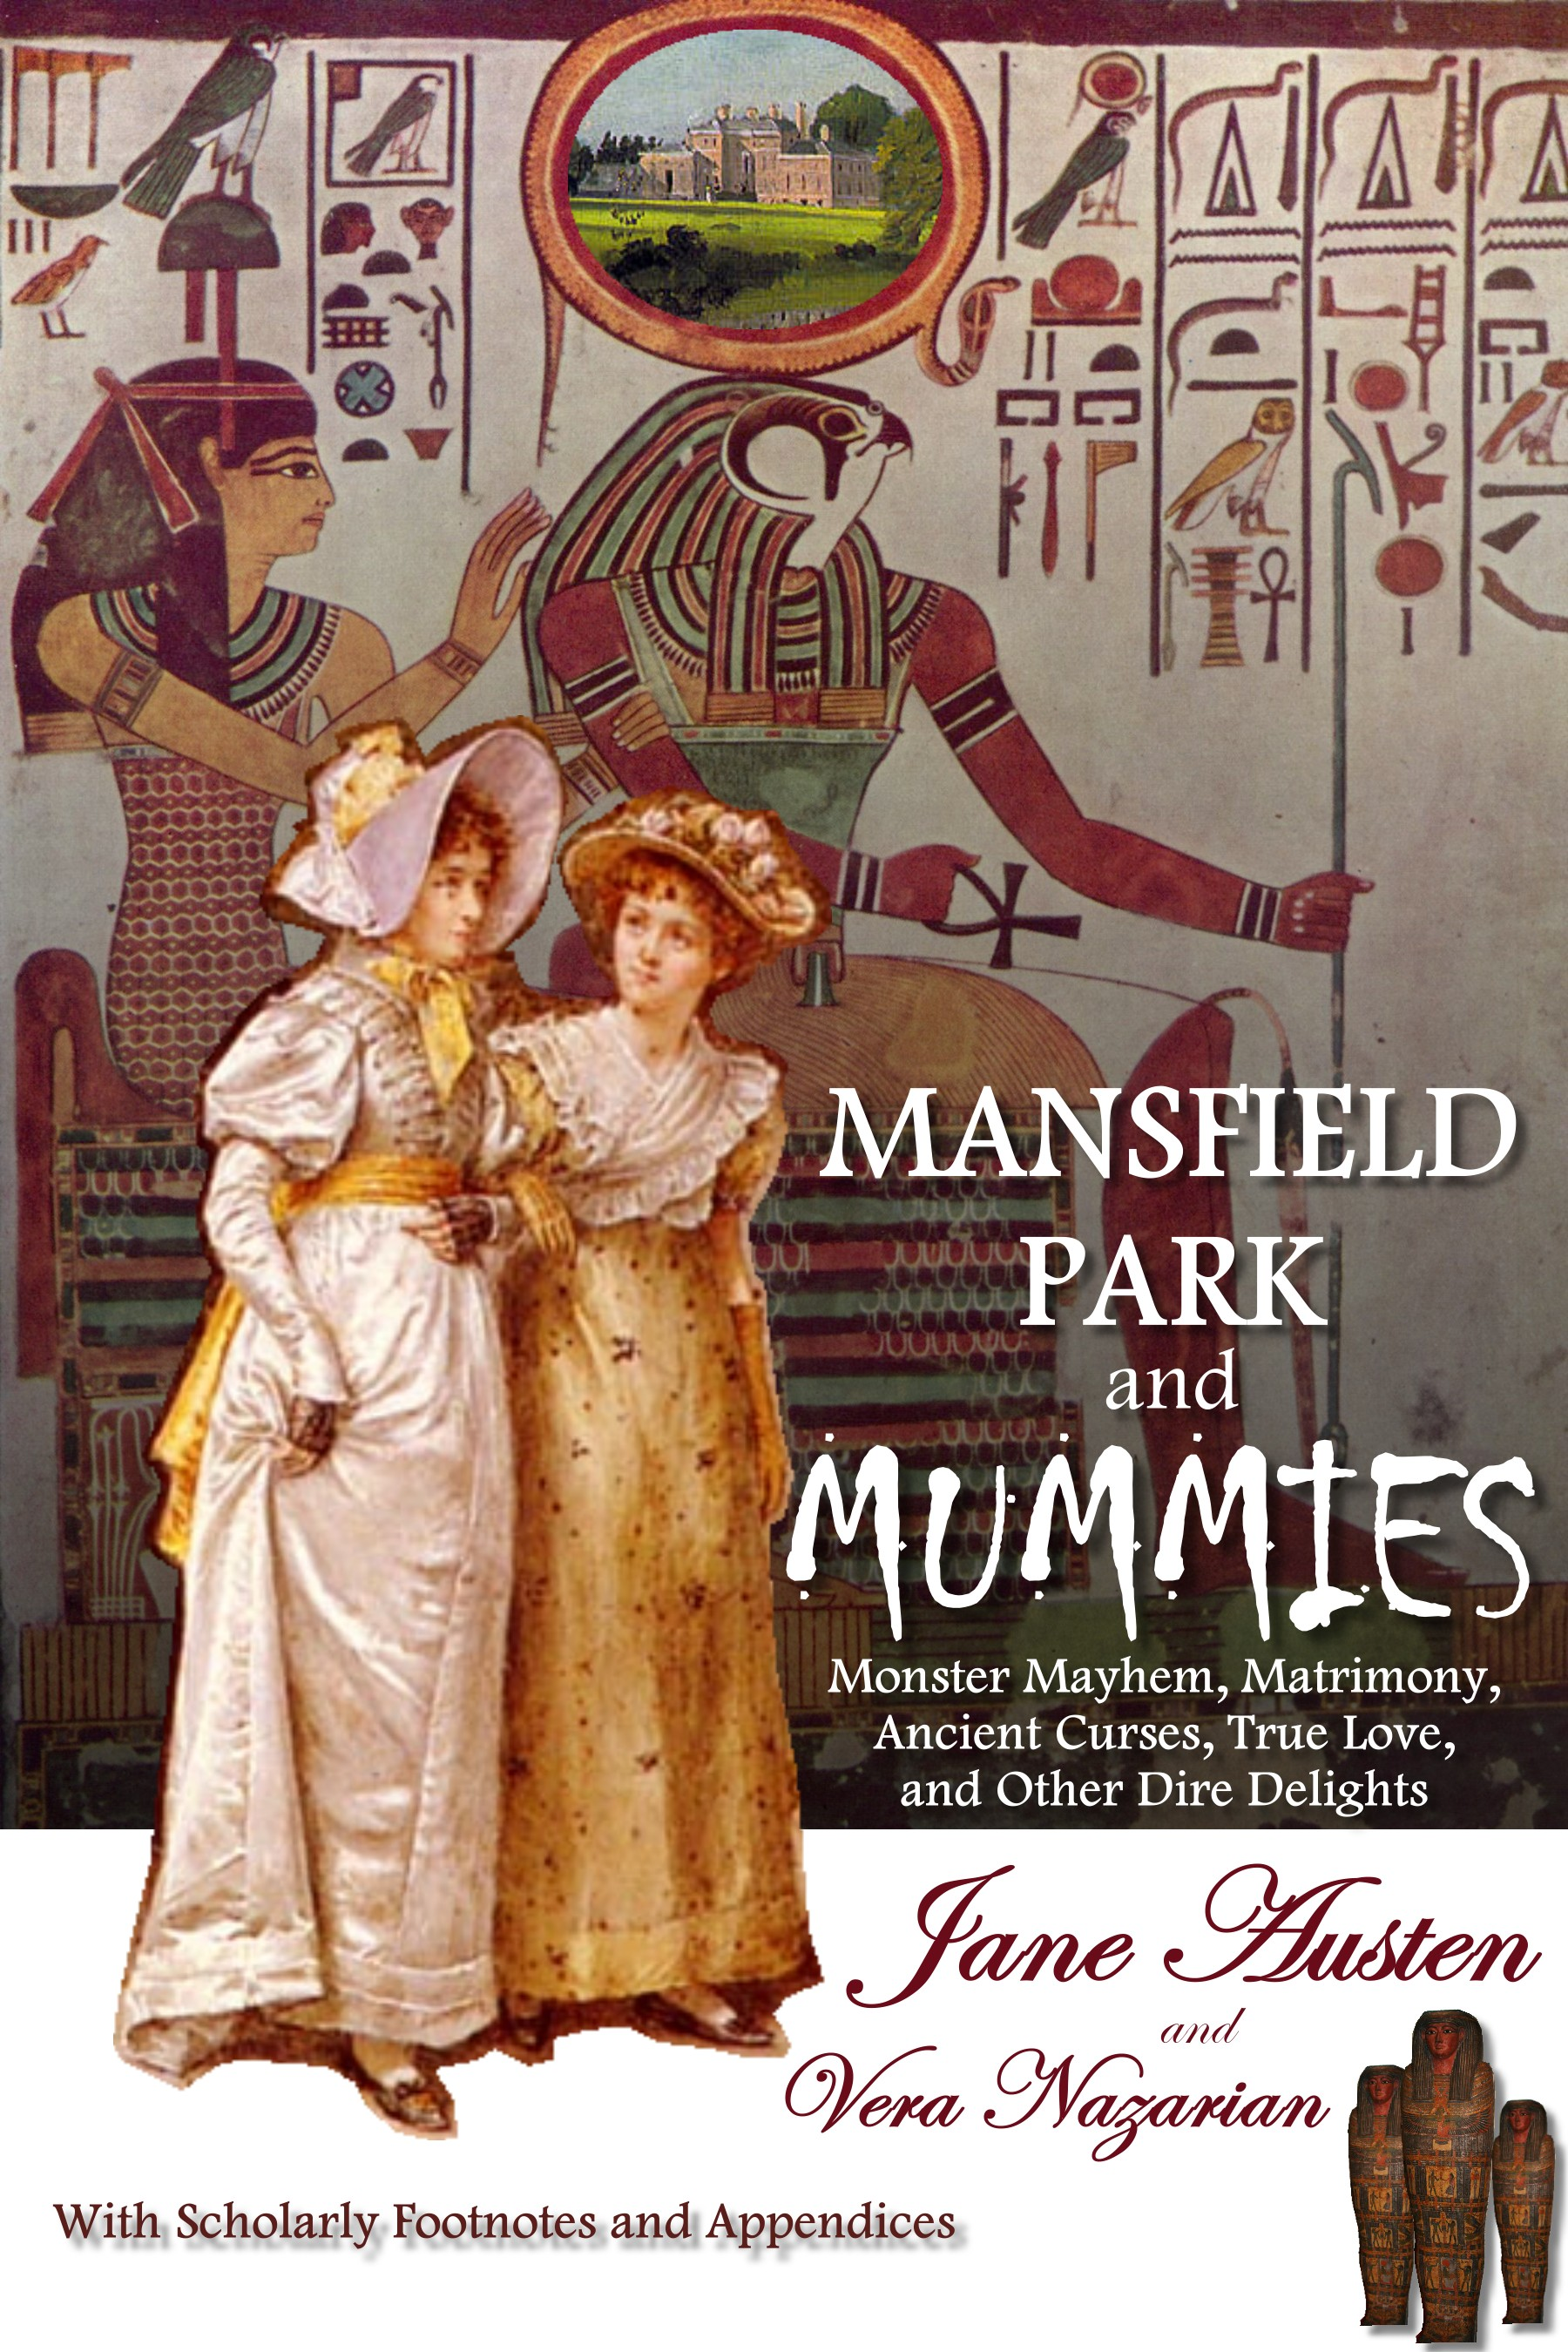 An instructive film about love and virtue Mansfield Park